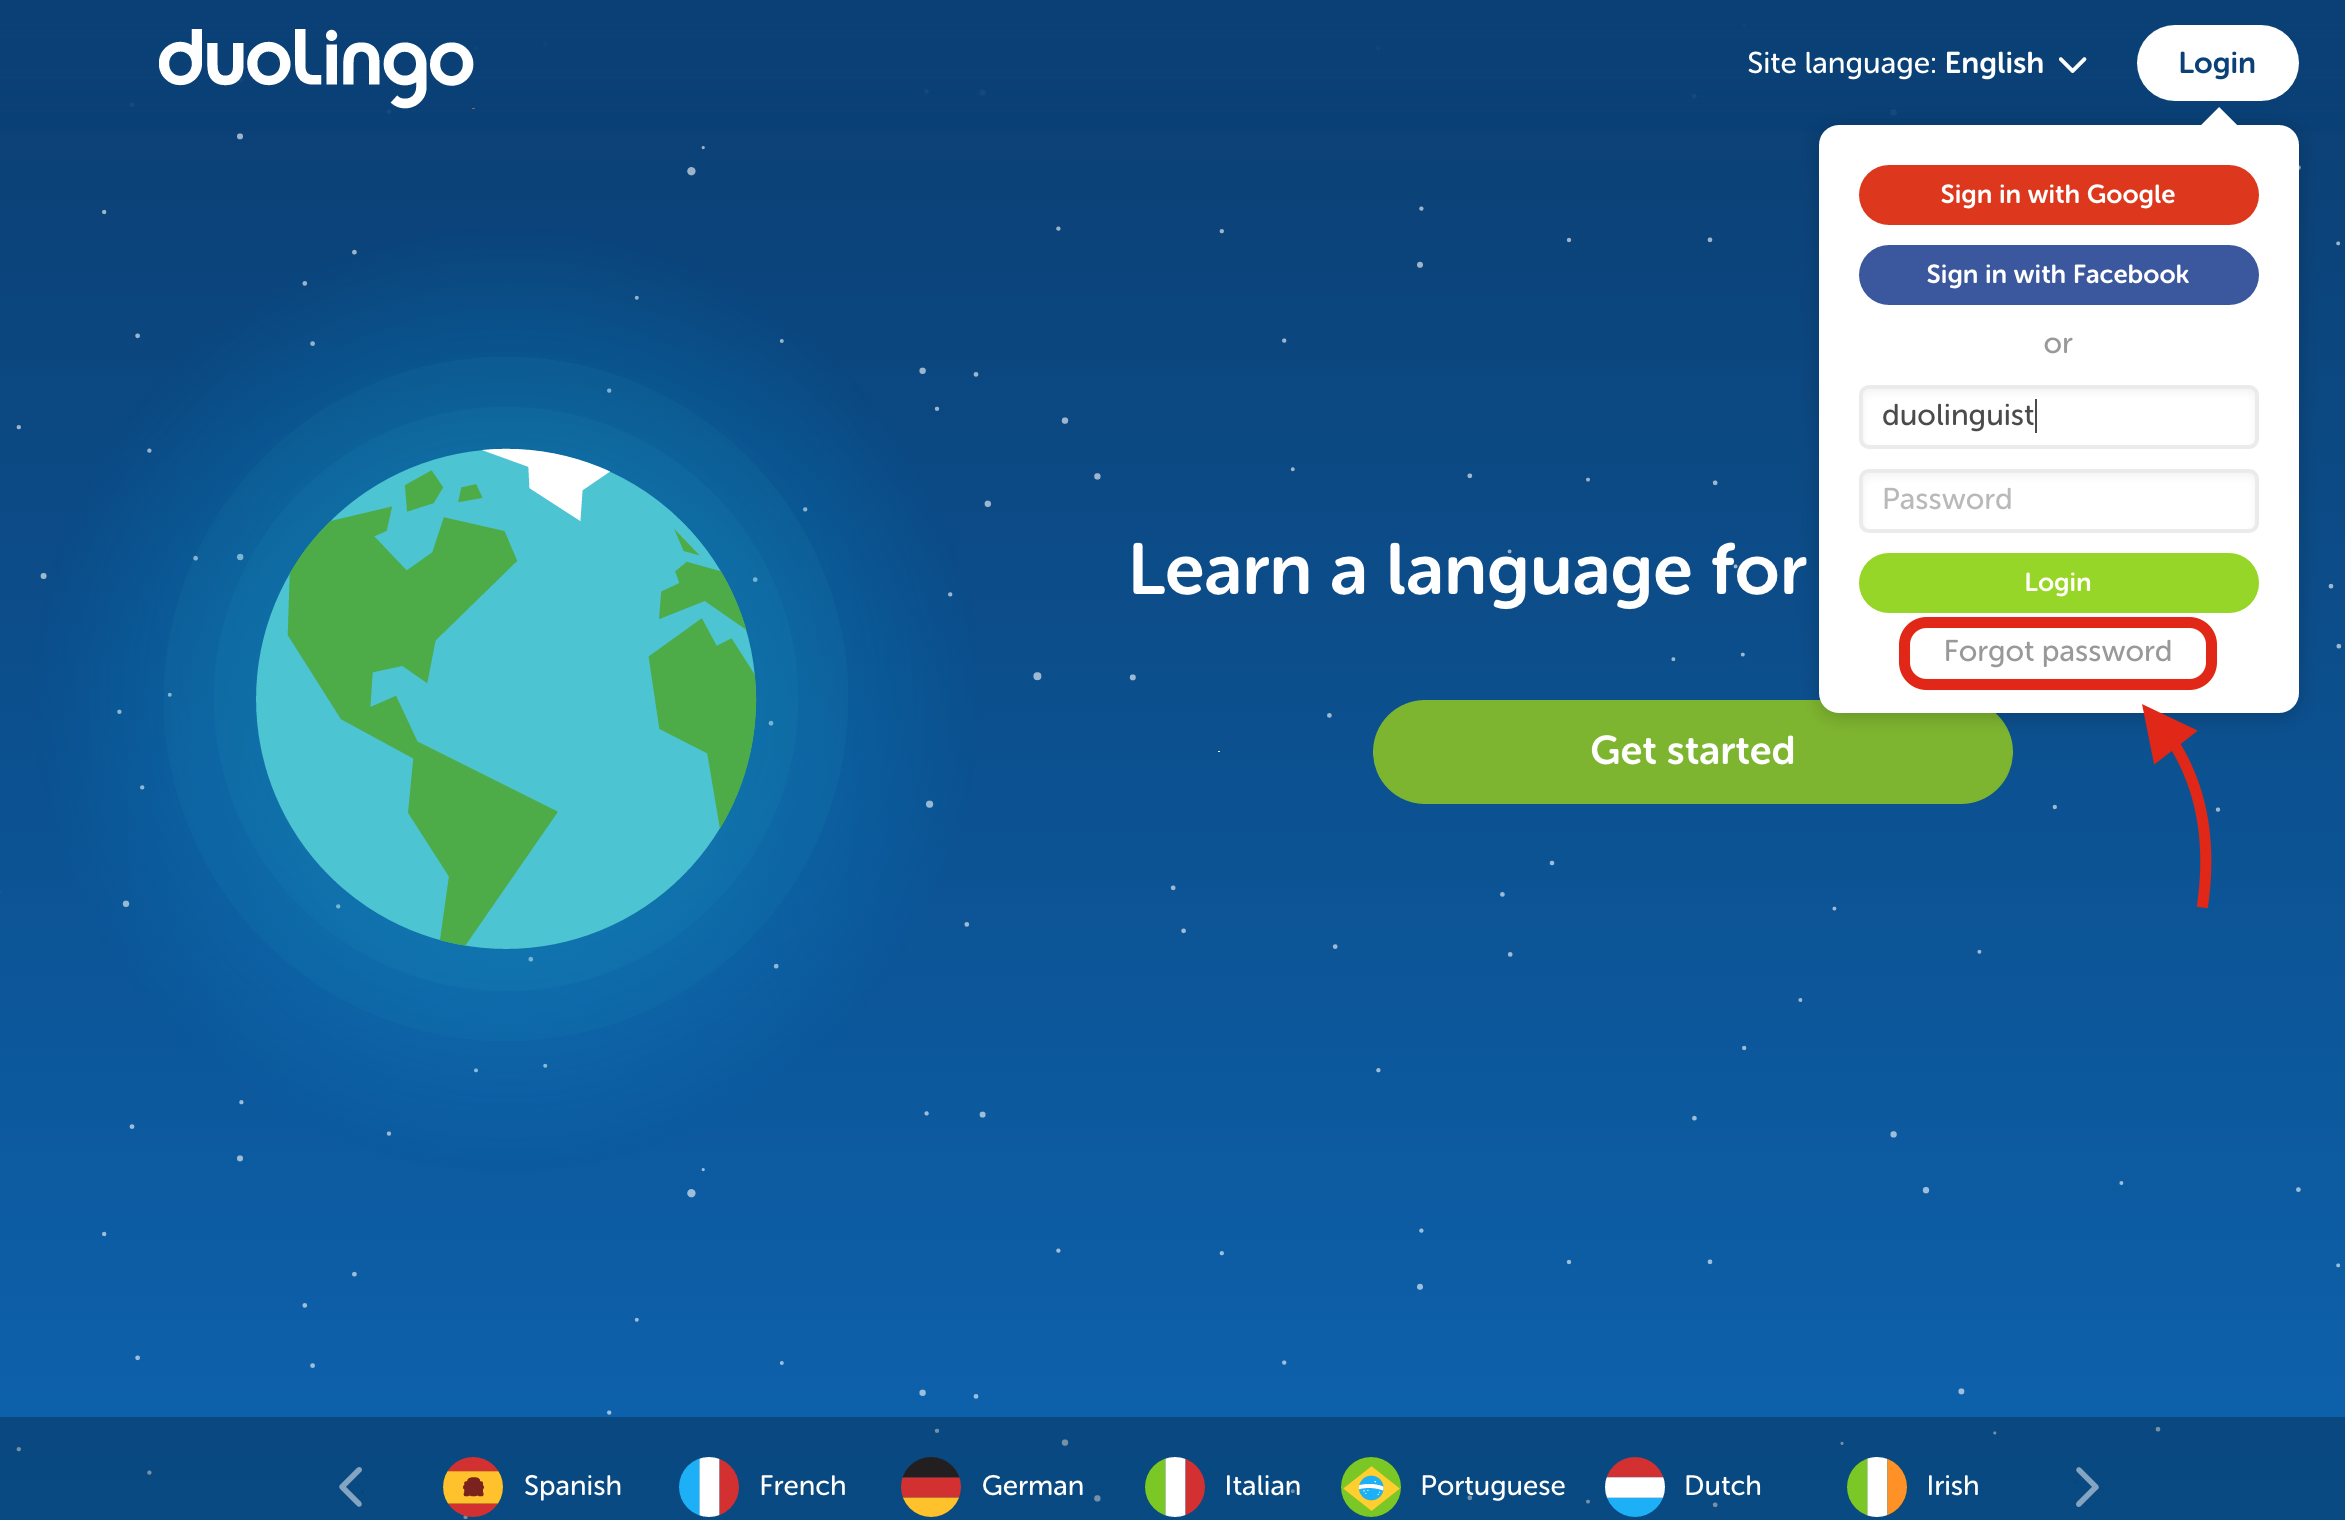 I can't access my account or reset my password! – Duolingo Help Center